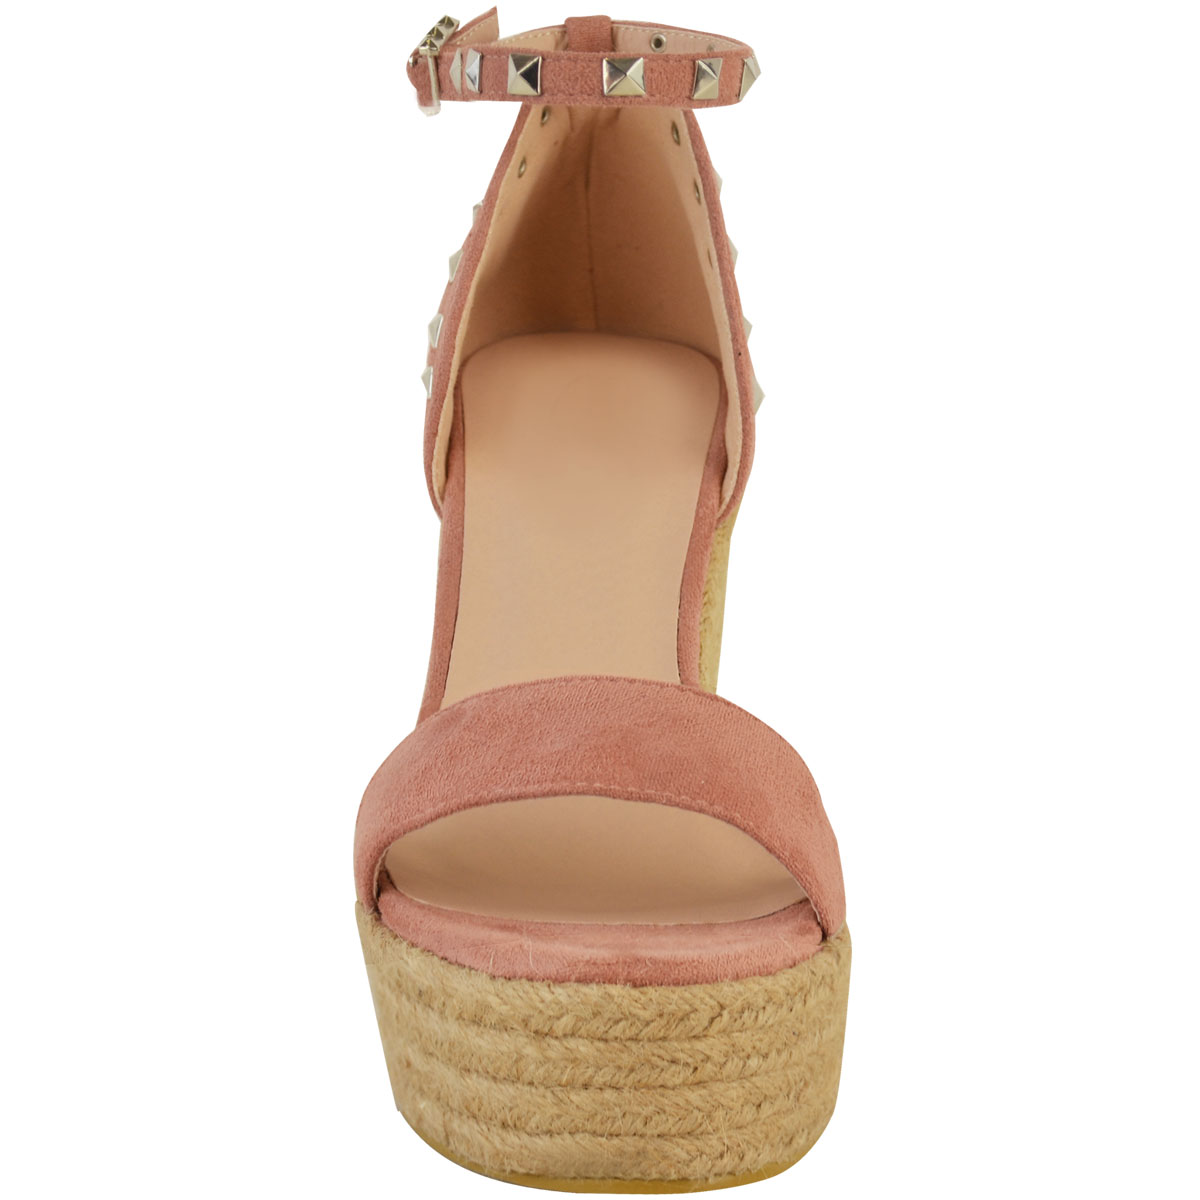 New-Womens-Stud-Espadrille-Wedge-Summer-Sandal-Ladies-Rose-Gold-Party-Shoes-Size thumbnail 17